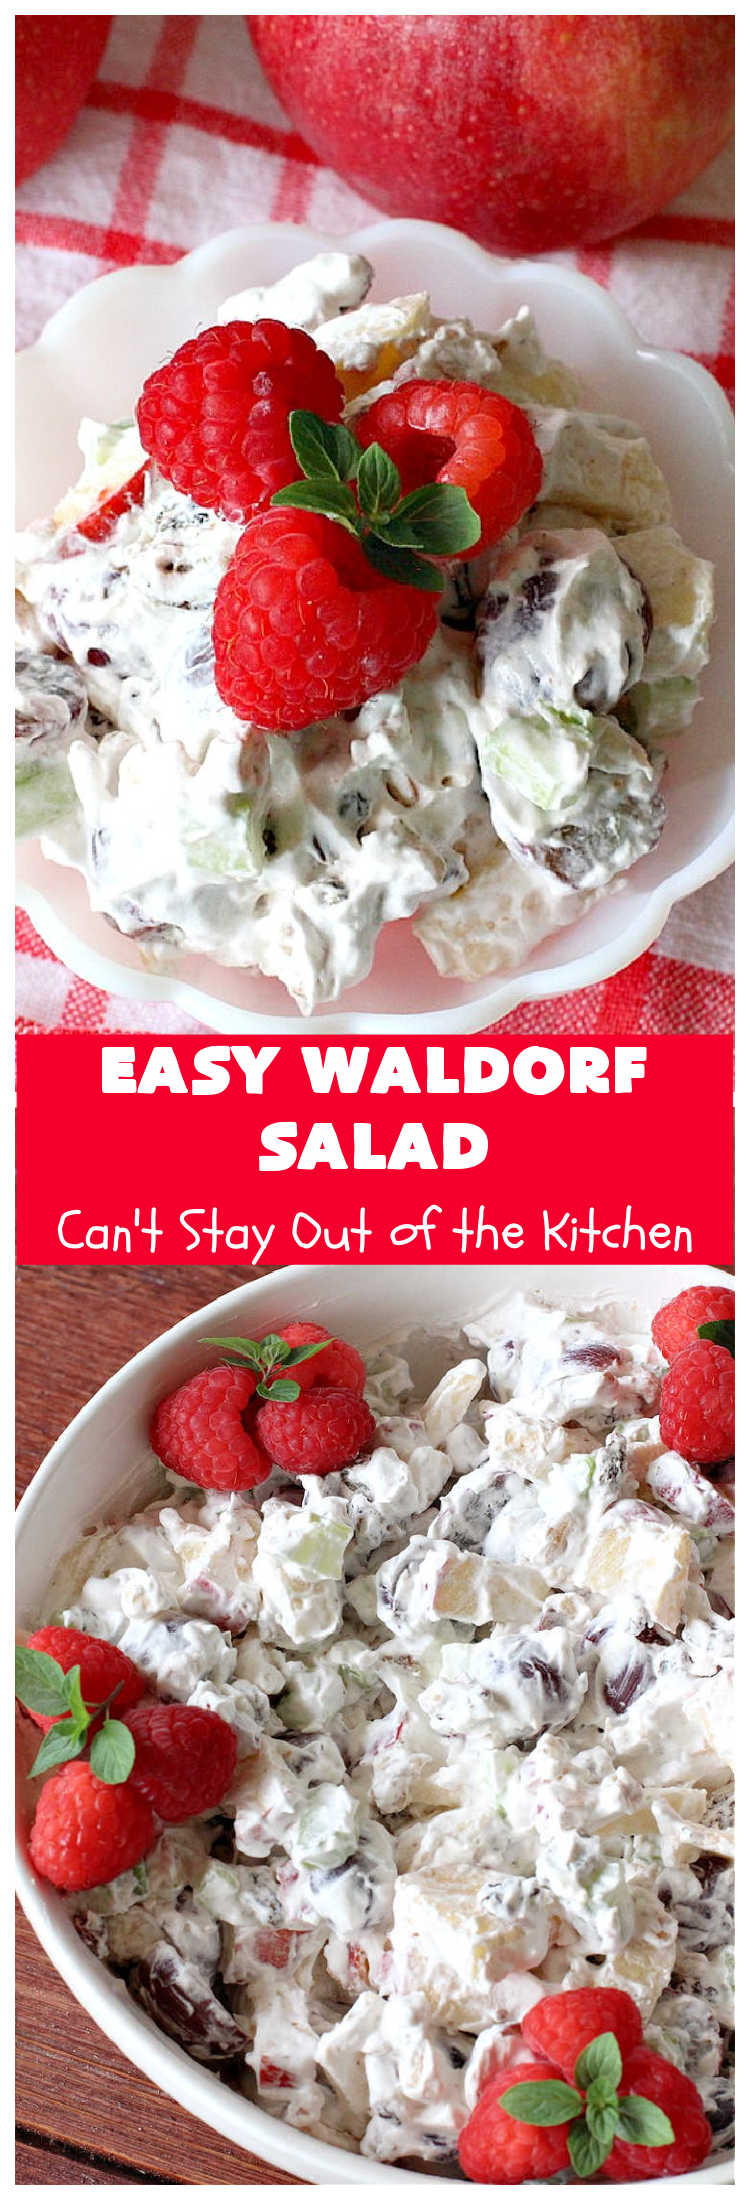 Easy Waldorf Salad | Can't Stay Out of the Kitchen | this luscious #GooseberryPatch #recipe uses #apples, #raisins, #grapes, #celery & #walnuts. This is the perfect #FruitSalad for #summer & #holiday menus. It can be prepared in under 10 minutes. #salad #WaldorfSalad #EasyWaldorfSalad #GlutenFree #HolidaySideDish